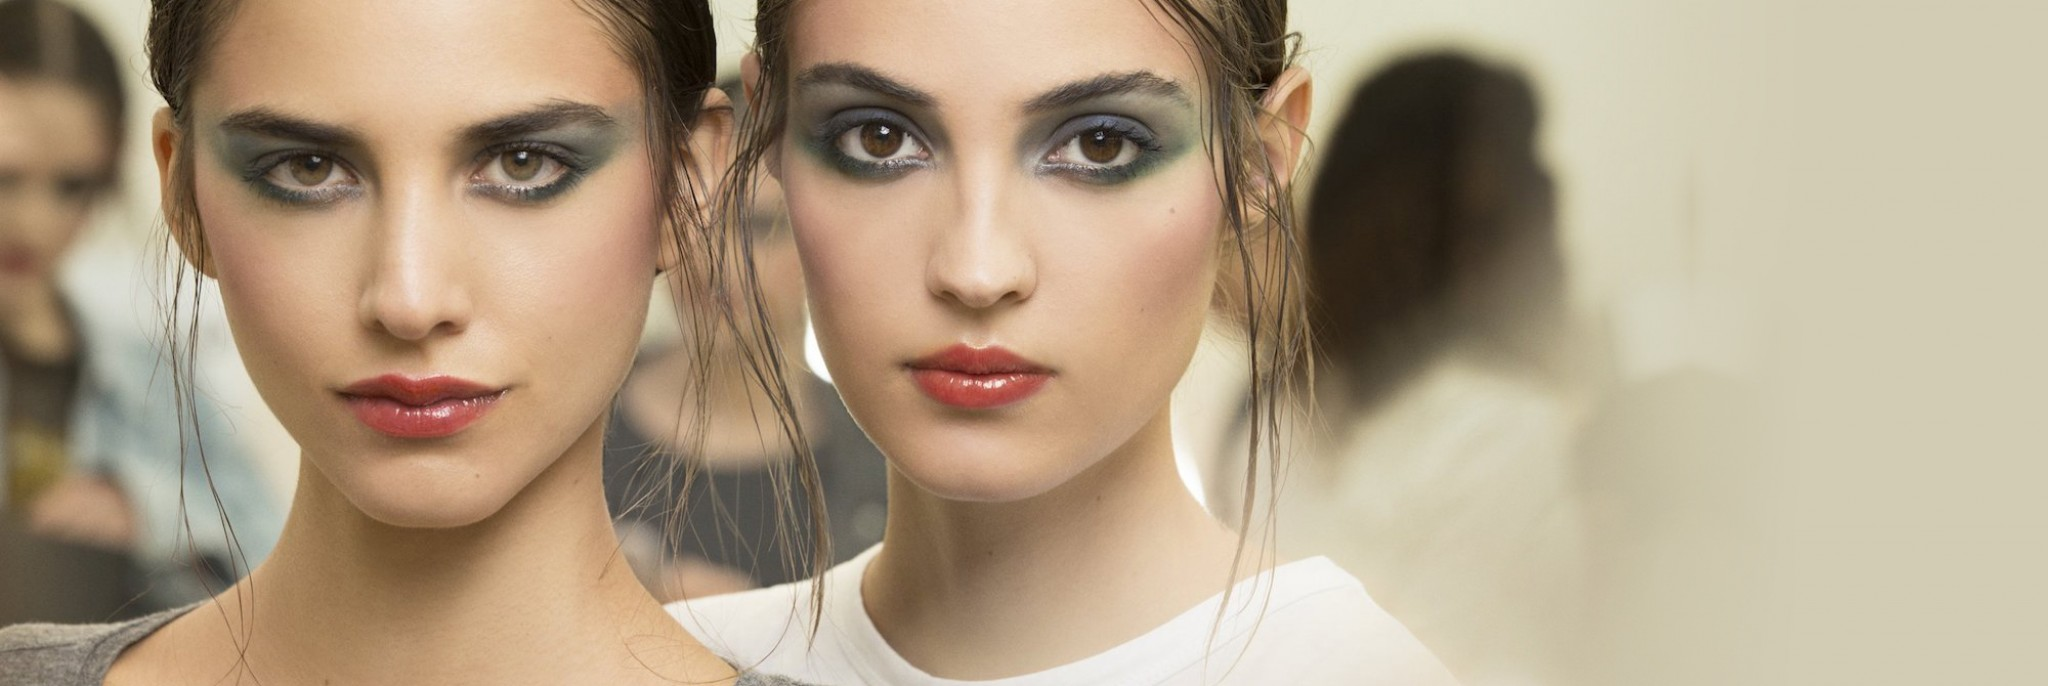 How to Pull Off Blue Eyeshadow, According to the Chanel Runway